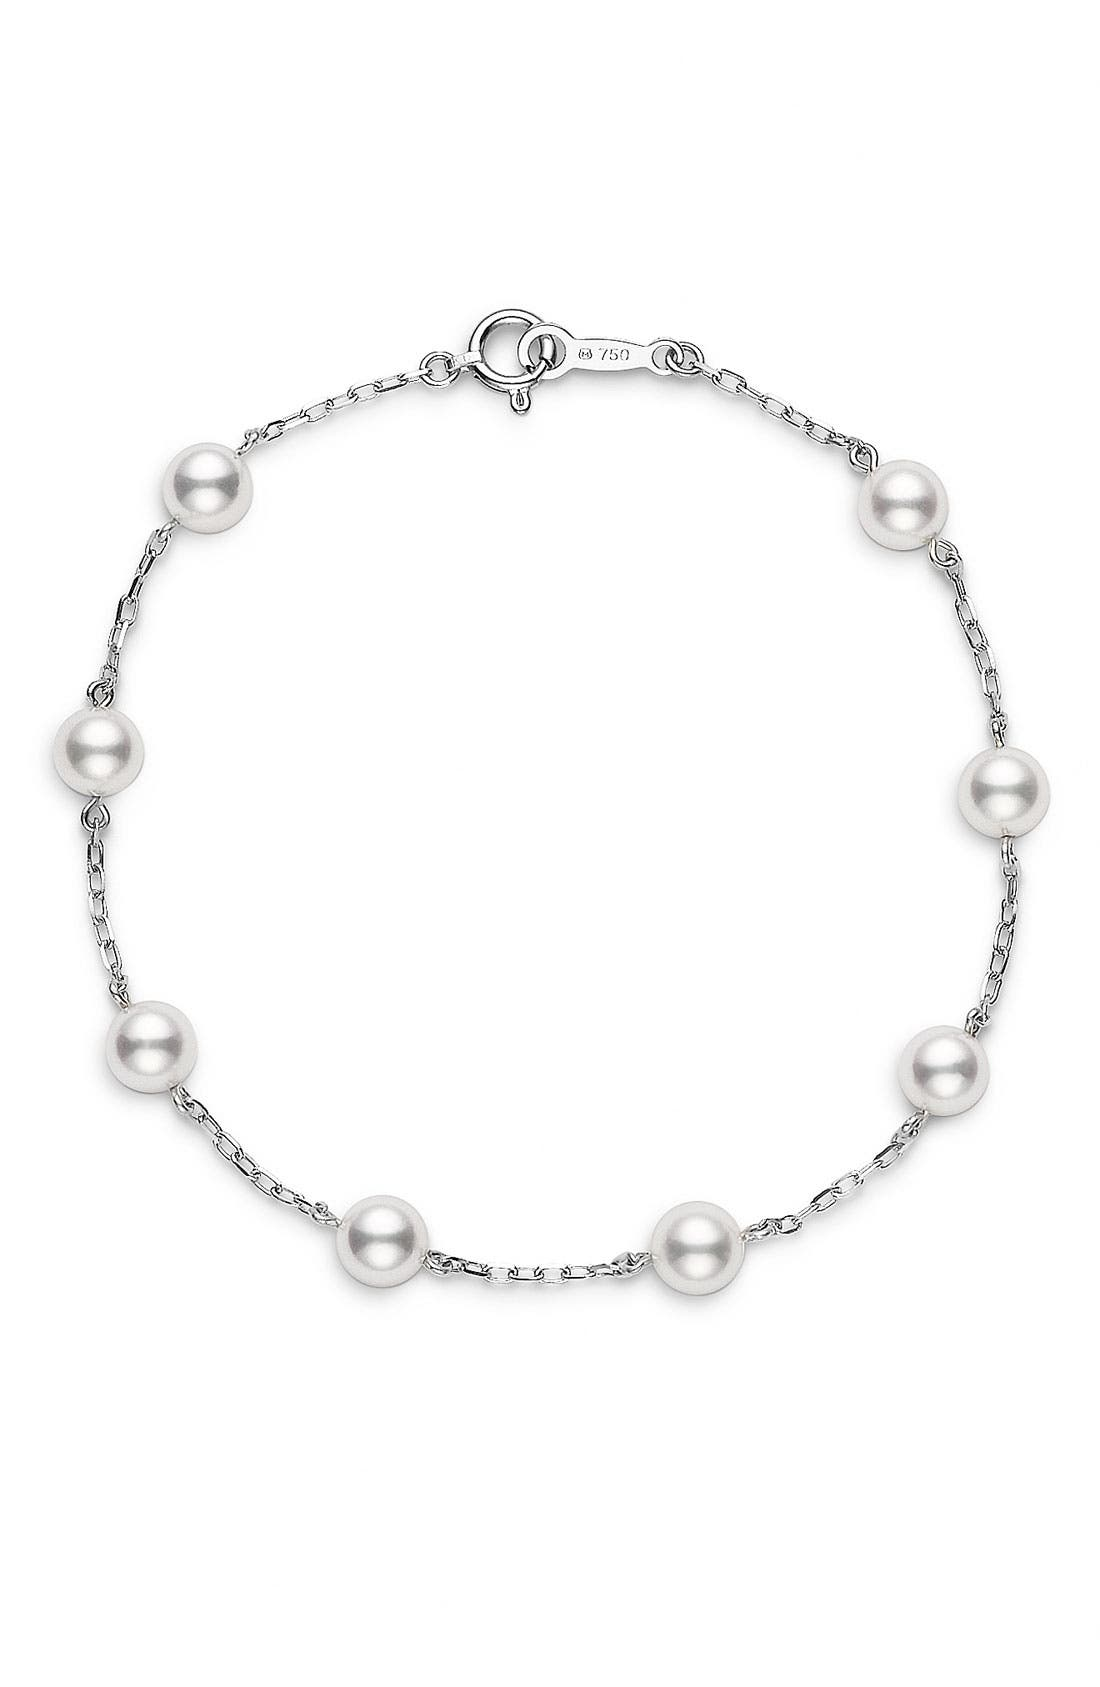 Alternate Image 1 Selected - Mikimoto Akoya Cultured Pearl & Chain Bracelet